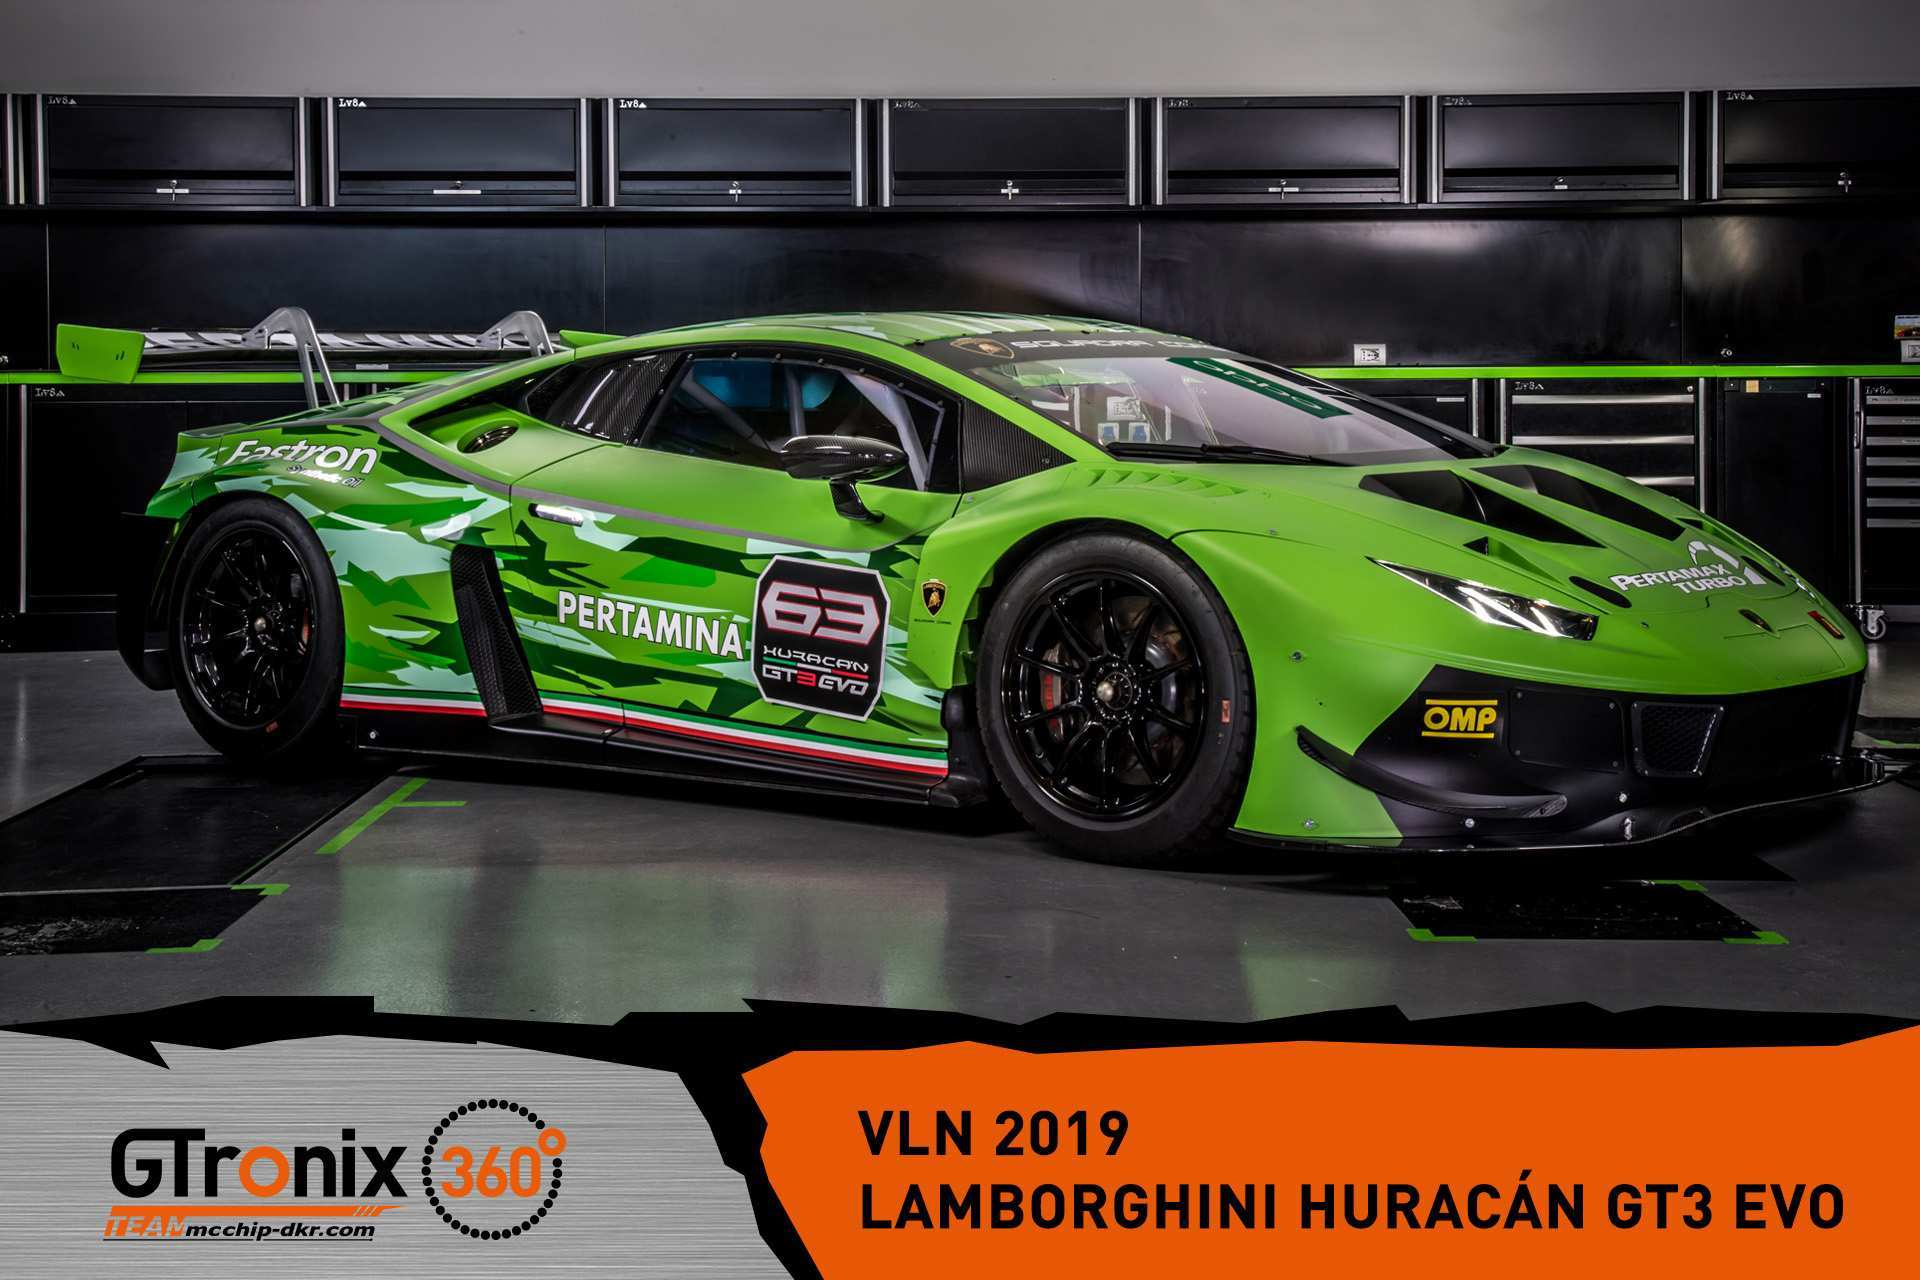 67 All New 2019 Lamborghini Huracan Gt3 Evo Reviews